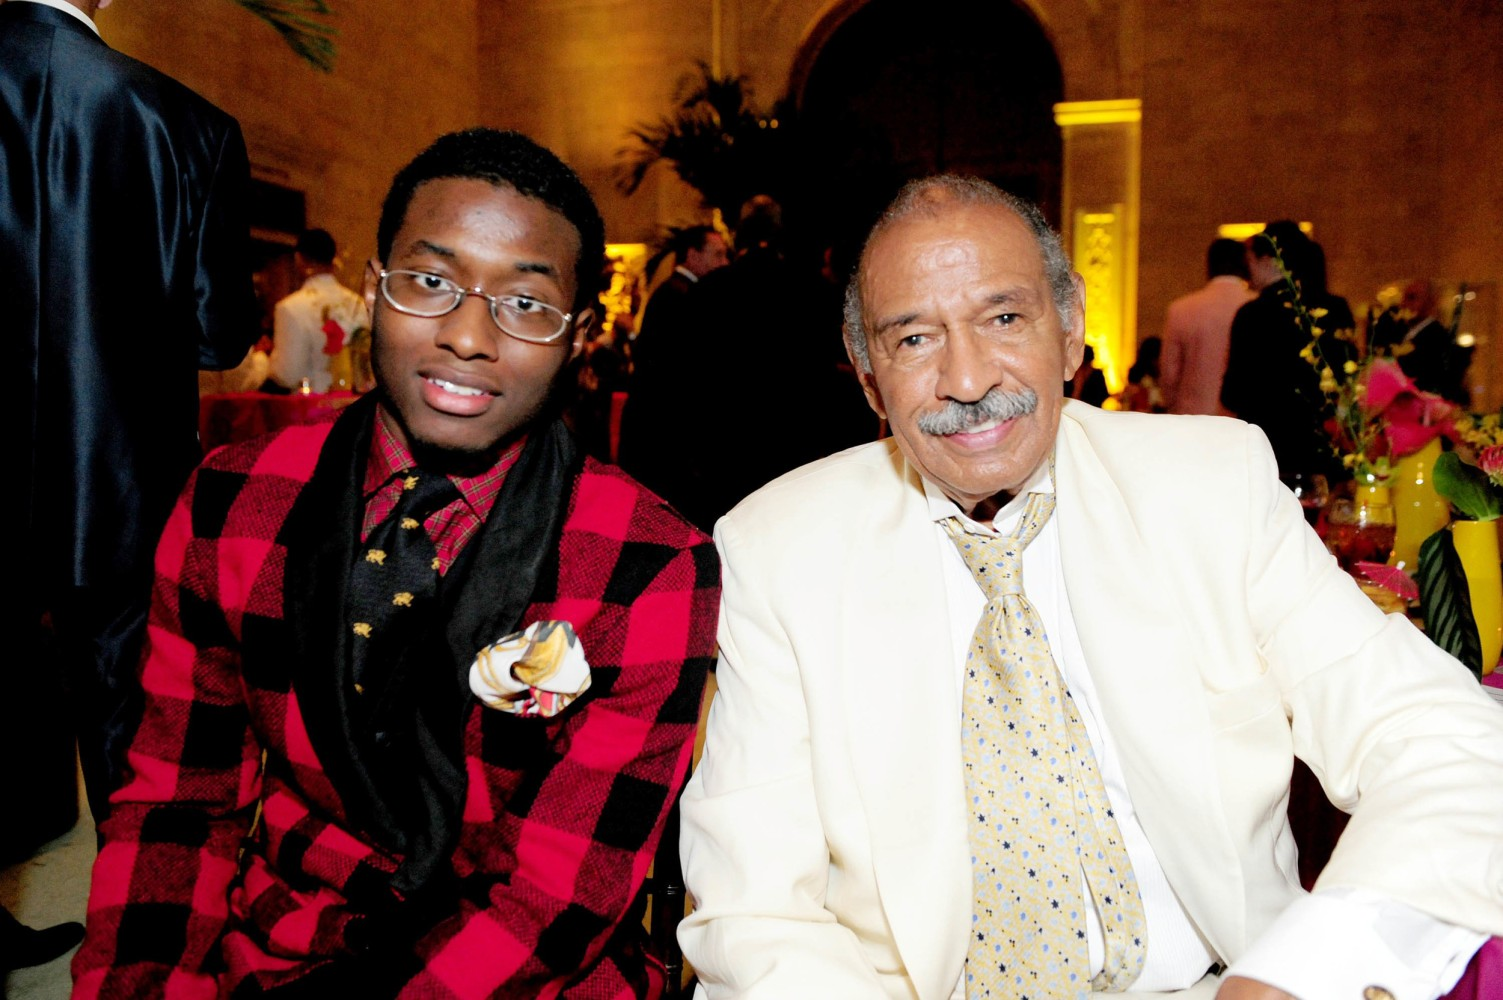 John Conyers III poses with his father Rep. John Conyers Jr. in Detroit